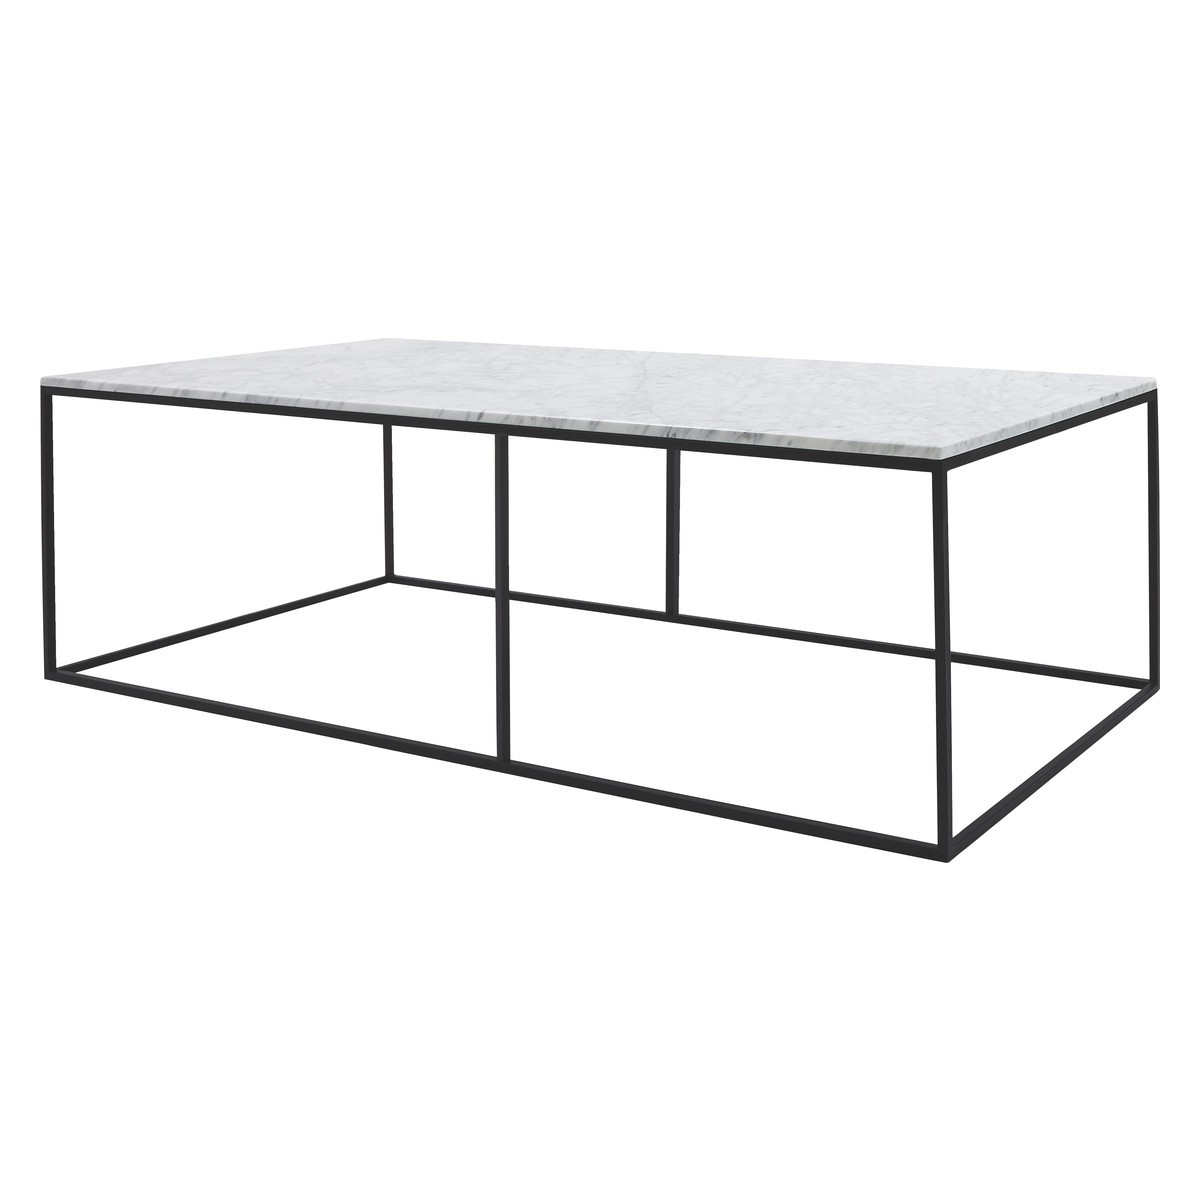 Buy Now At Habitat Uk Inside Marble Coffee Tables (Gallery 12 of 20)